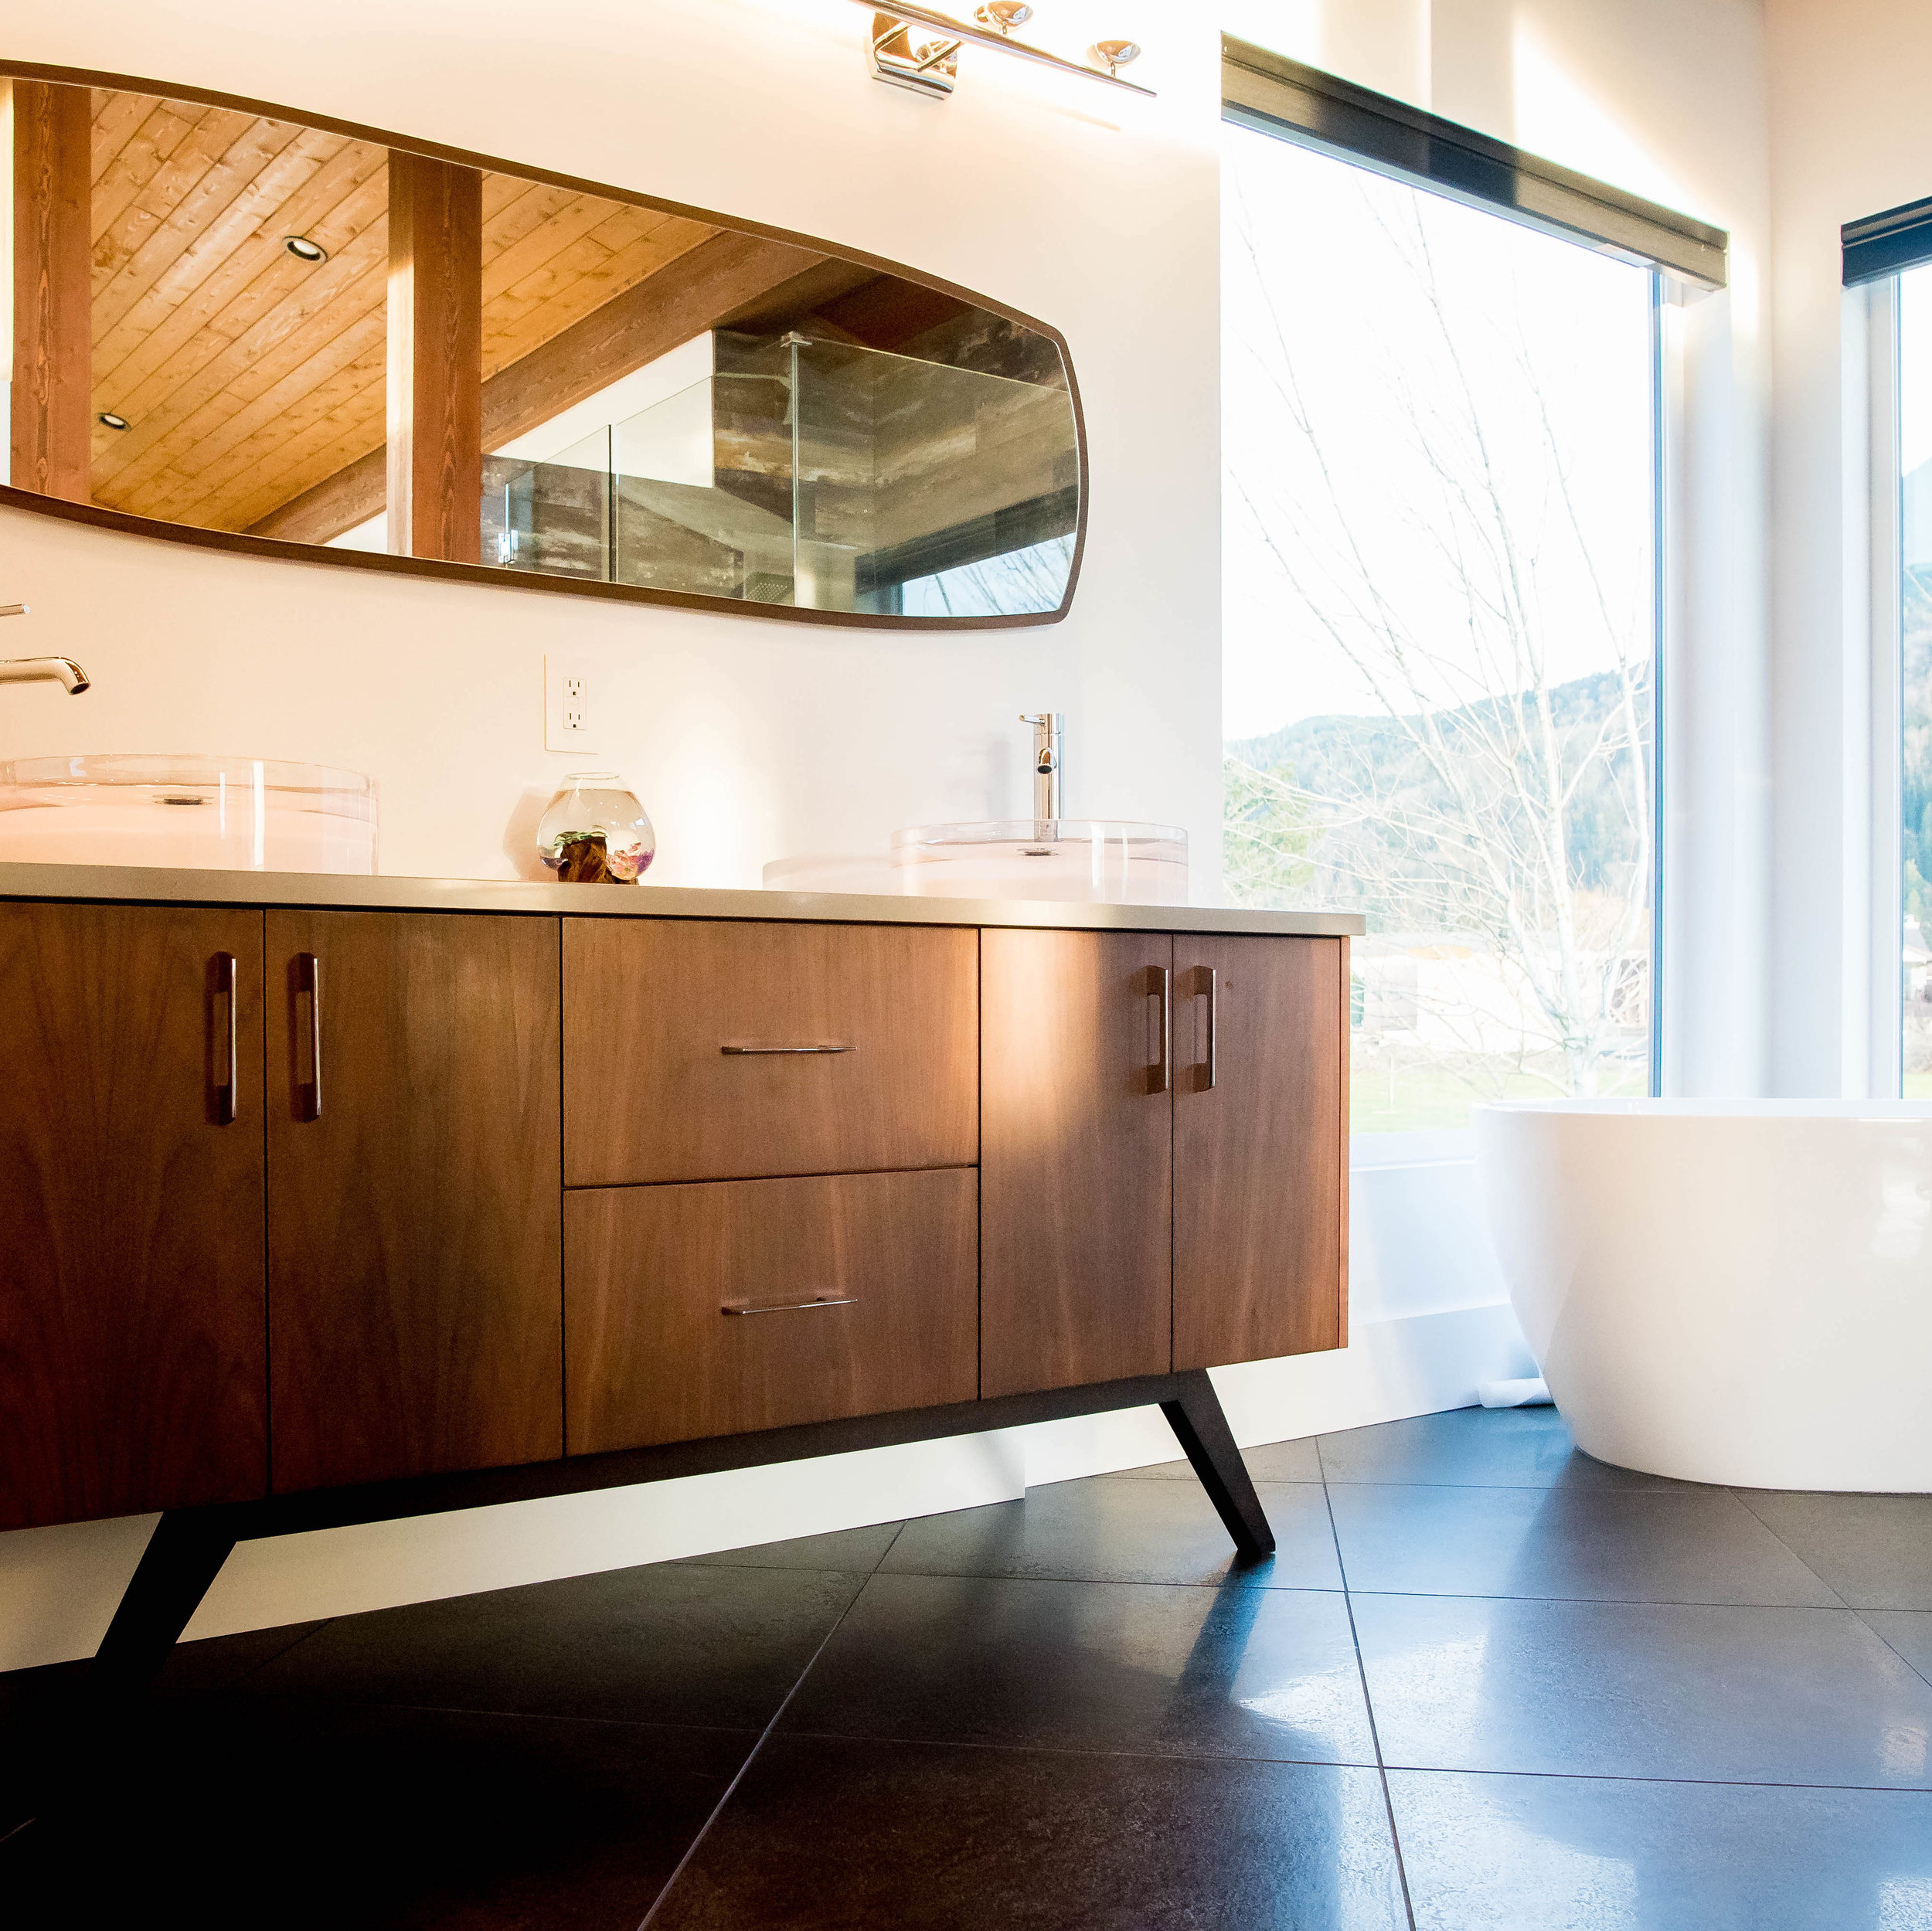 BATHROOMS - Bathe, freshen up. Do what you do. We'll build the cabinets.